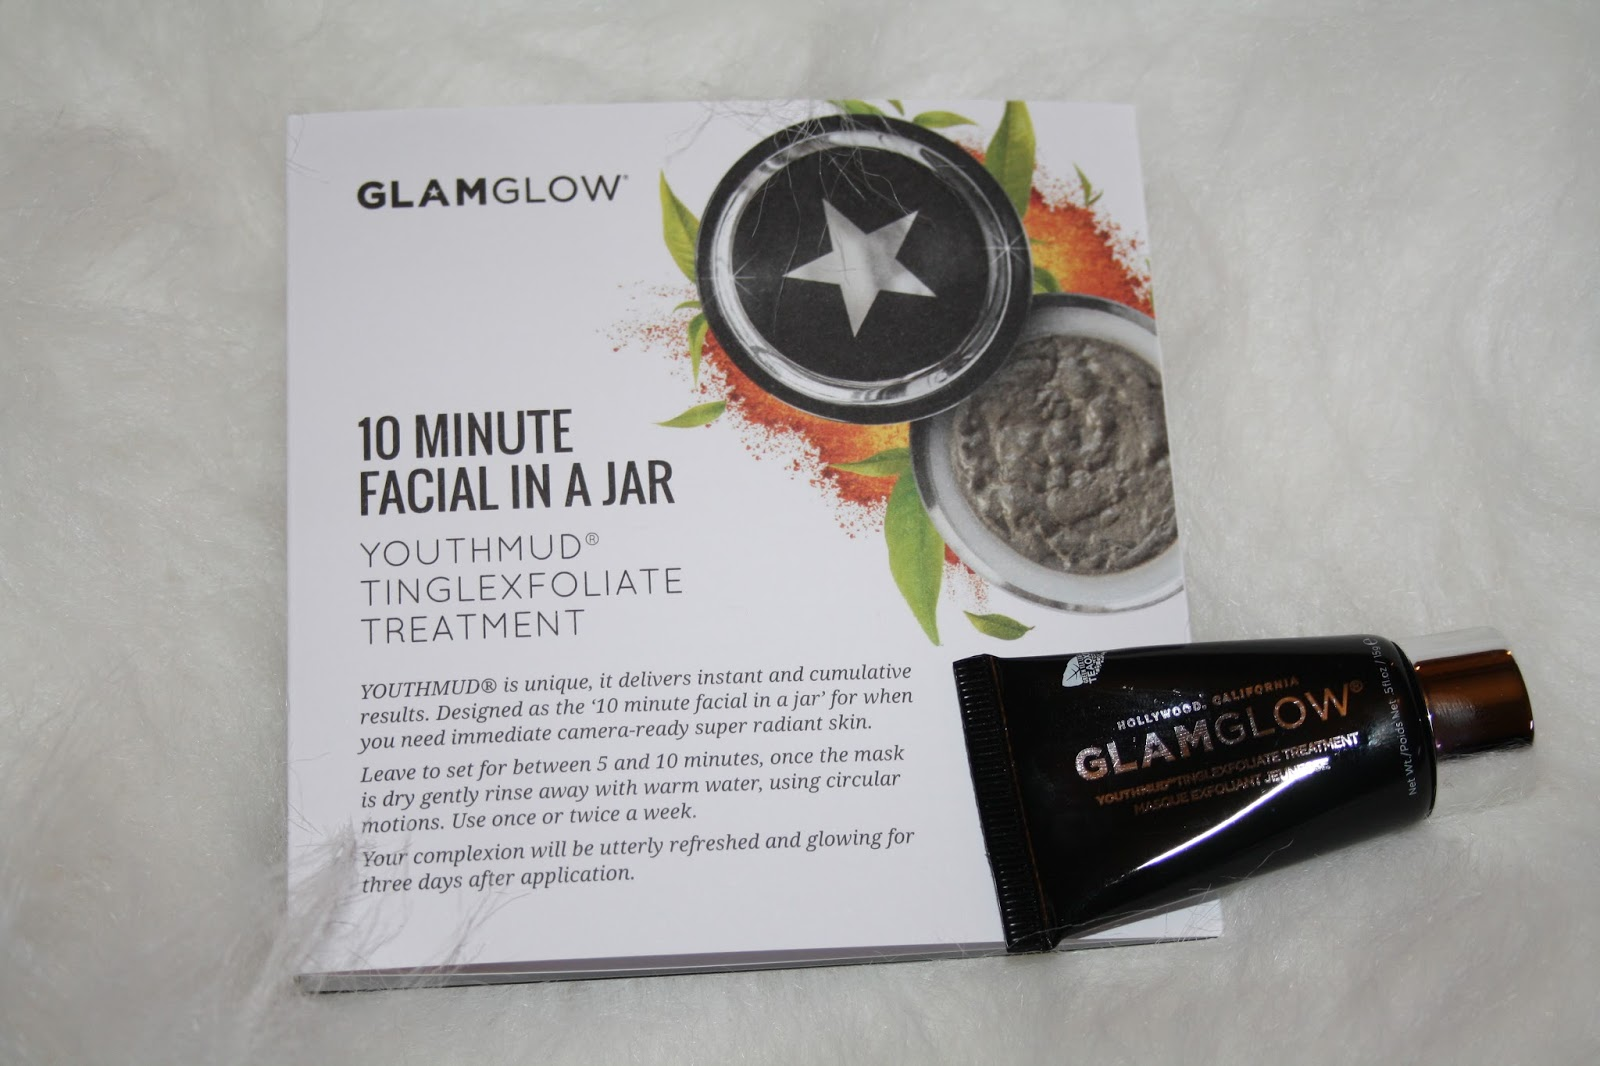 Look Fantastic November Beauty Box Glamglow